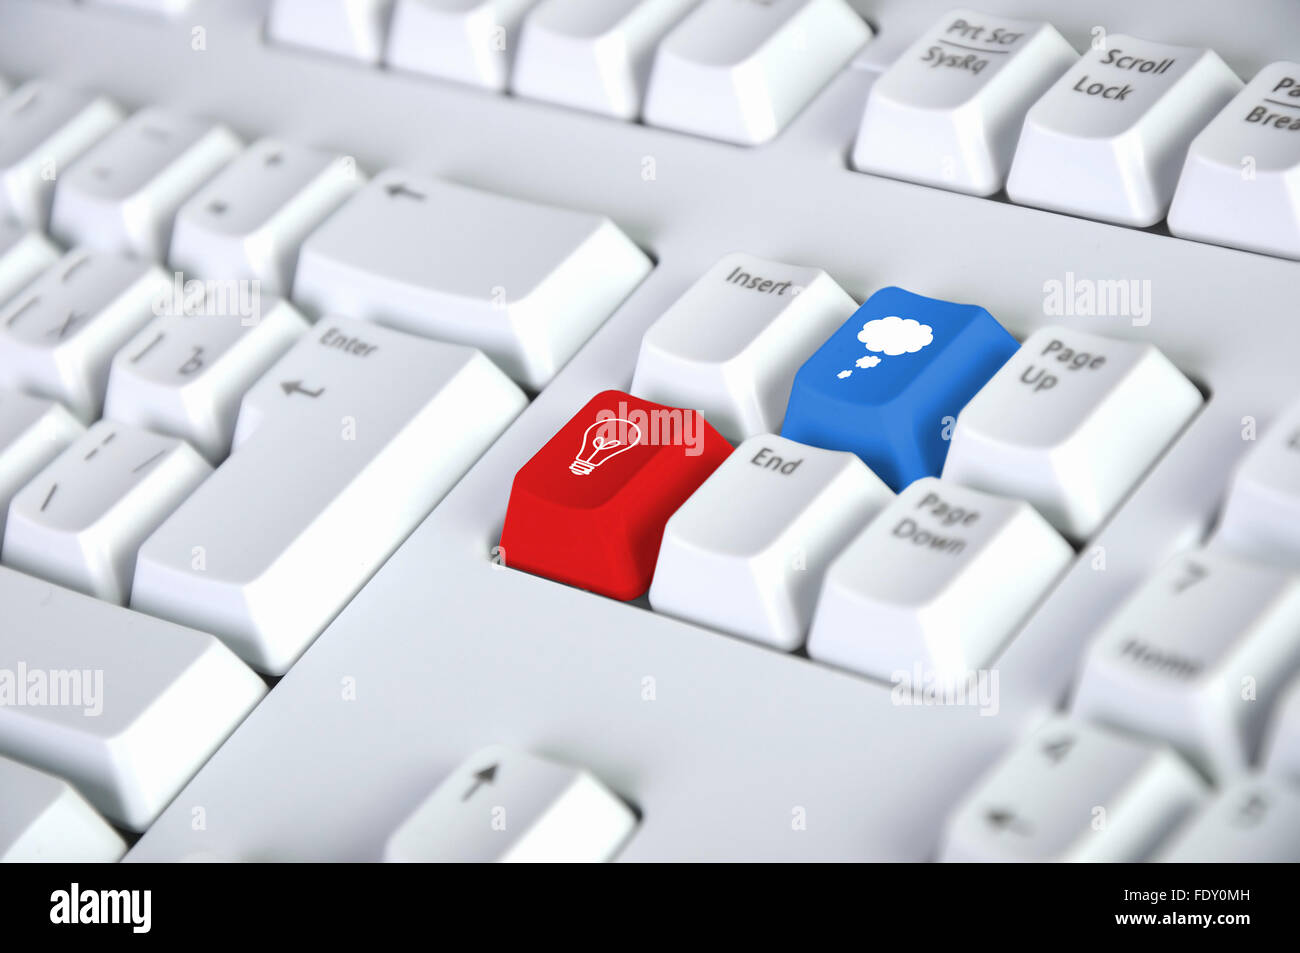 Image of computer keyboard with clous symbol on it stock photo image of computer keyboard with clous symbol on it biocorpaavc